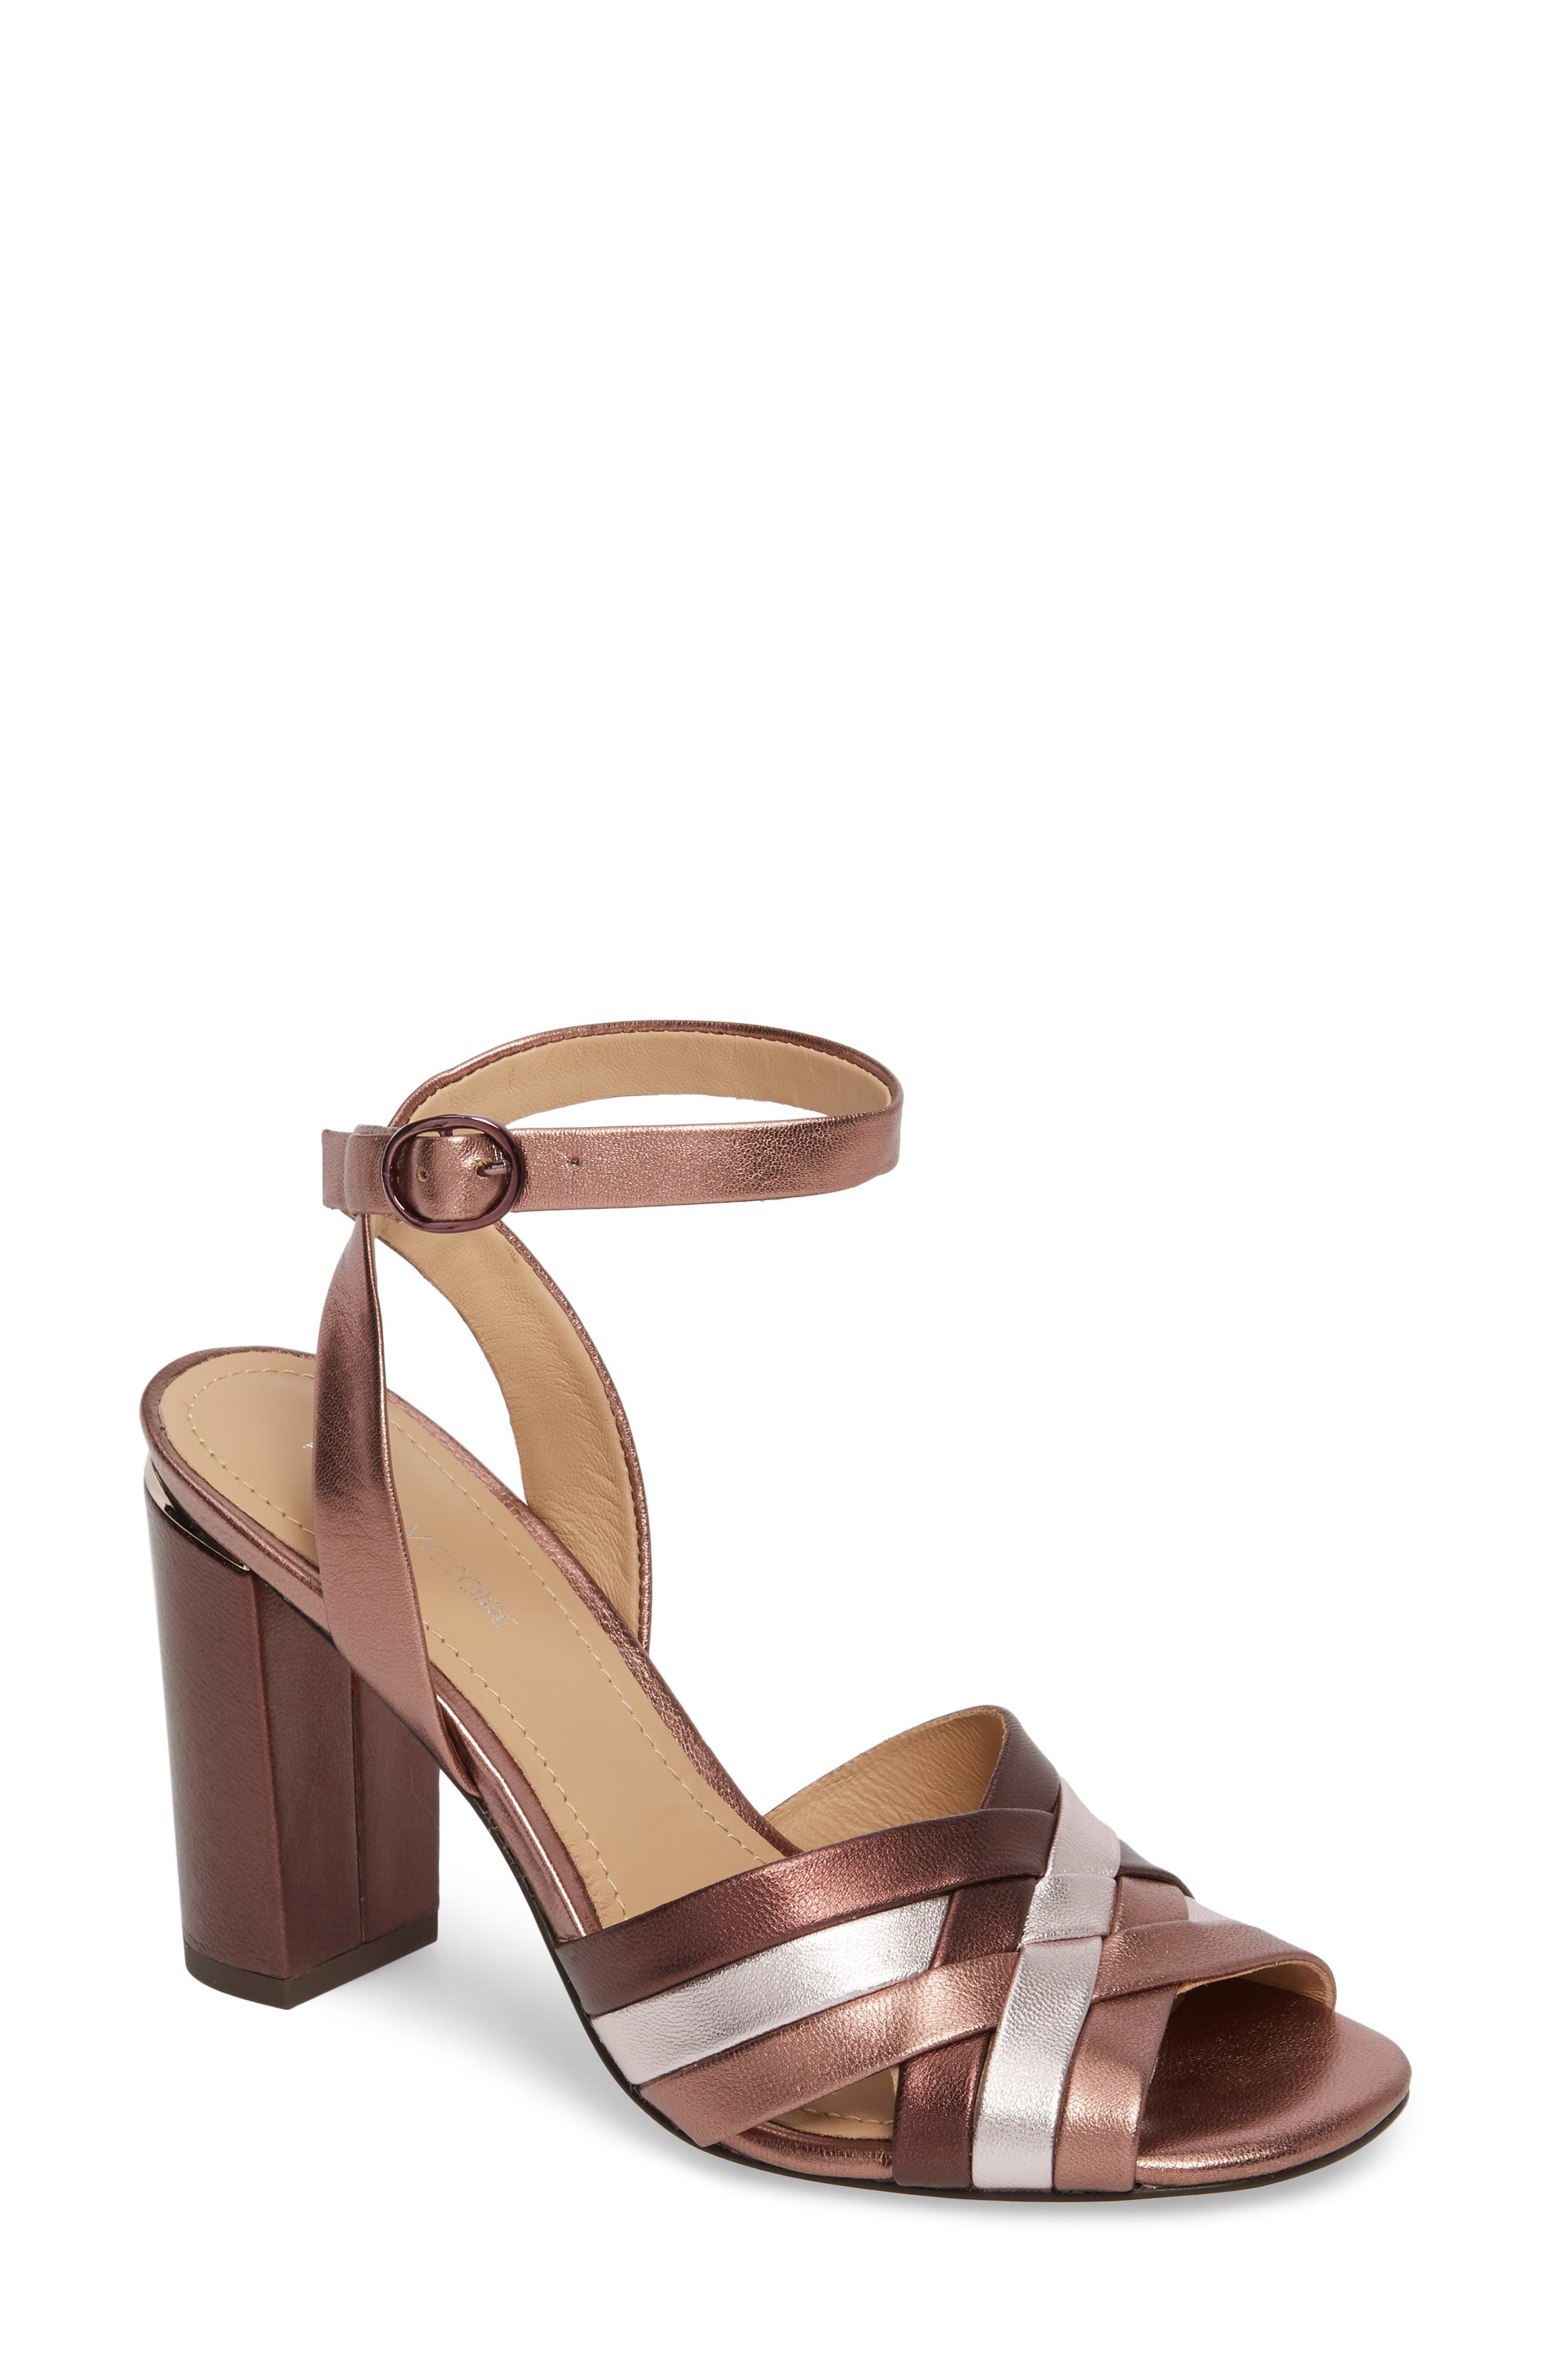 Hadley Sandal,                             Main thumbnail 1, color,                             Rose Leather